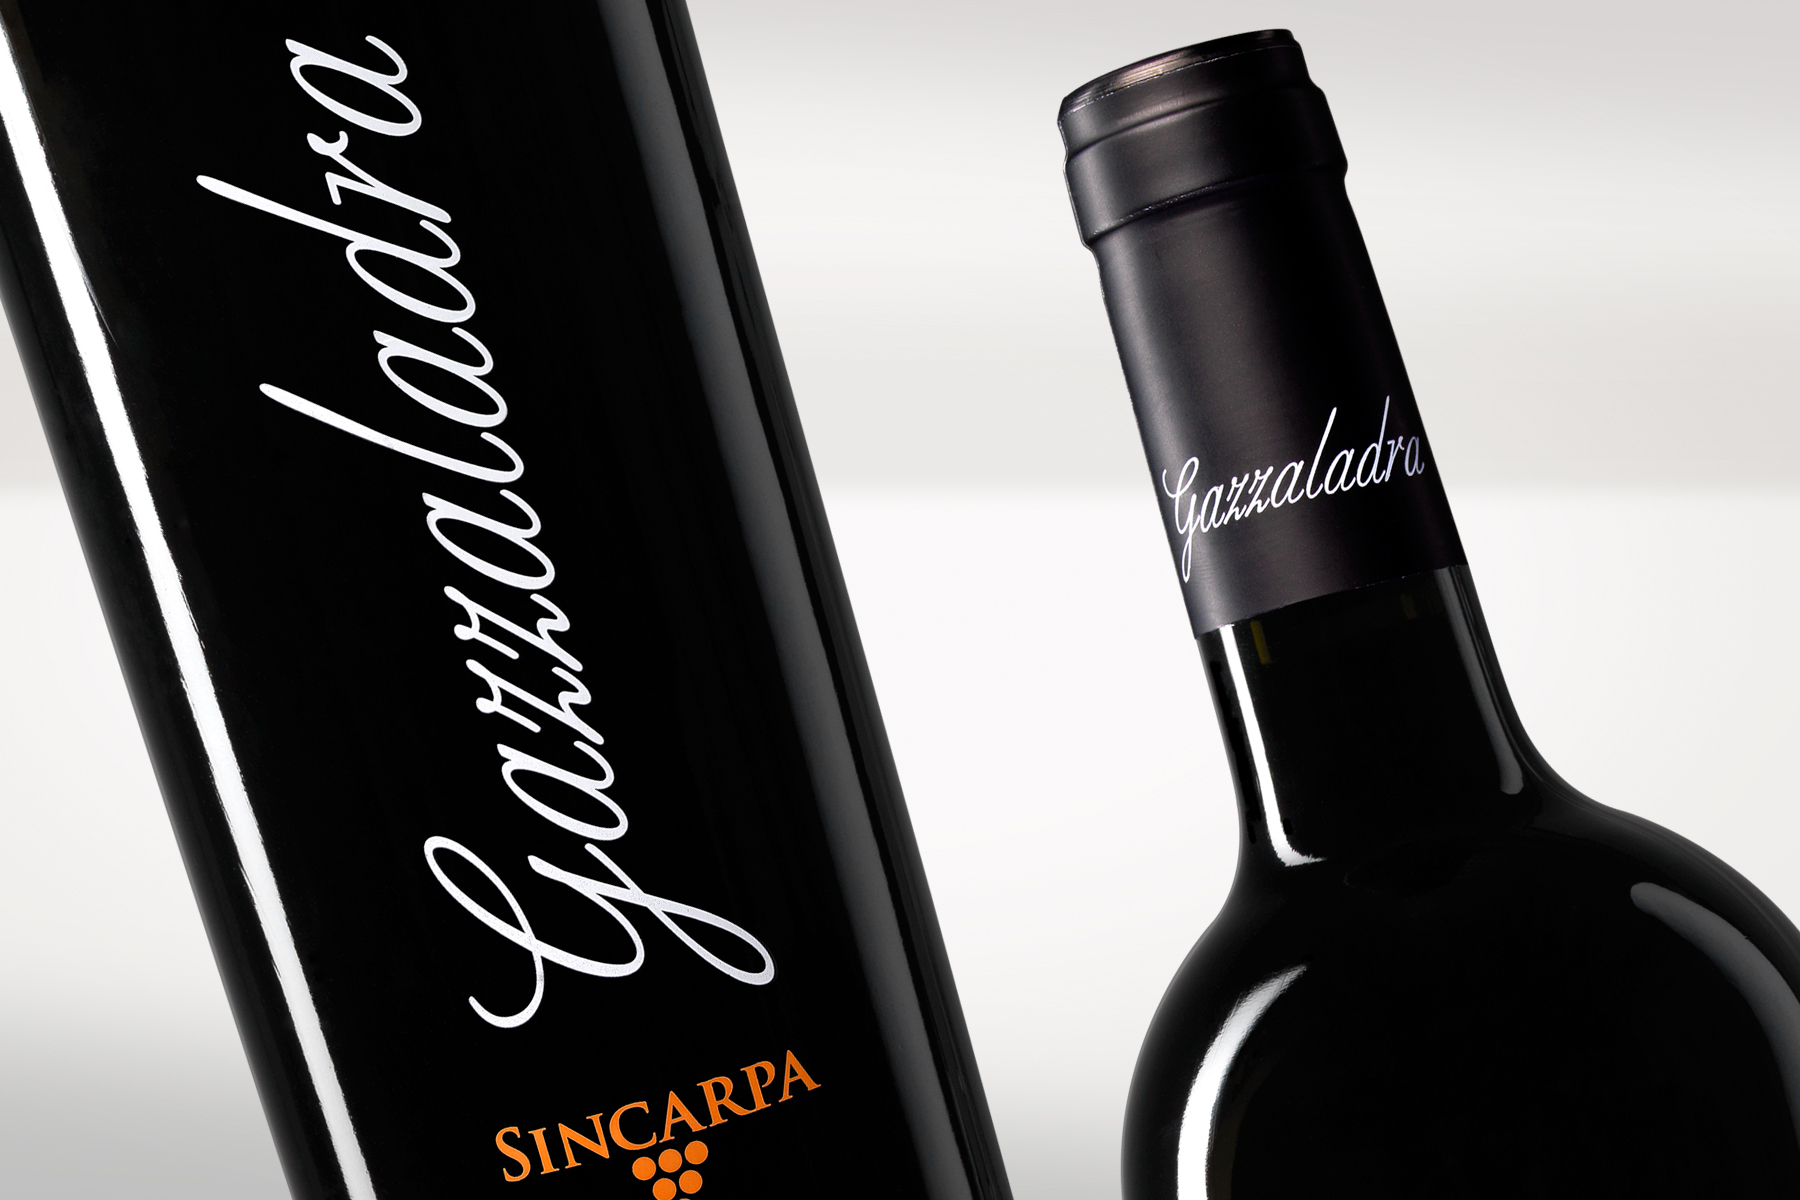 spaziodipaolo_sincarpa_vini_packaging_3